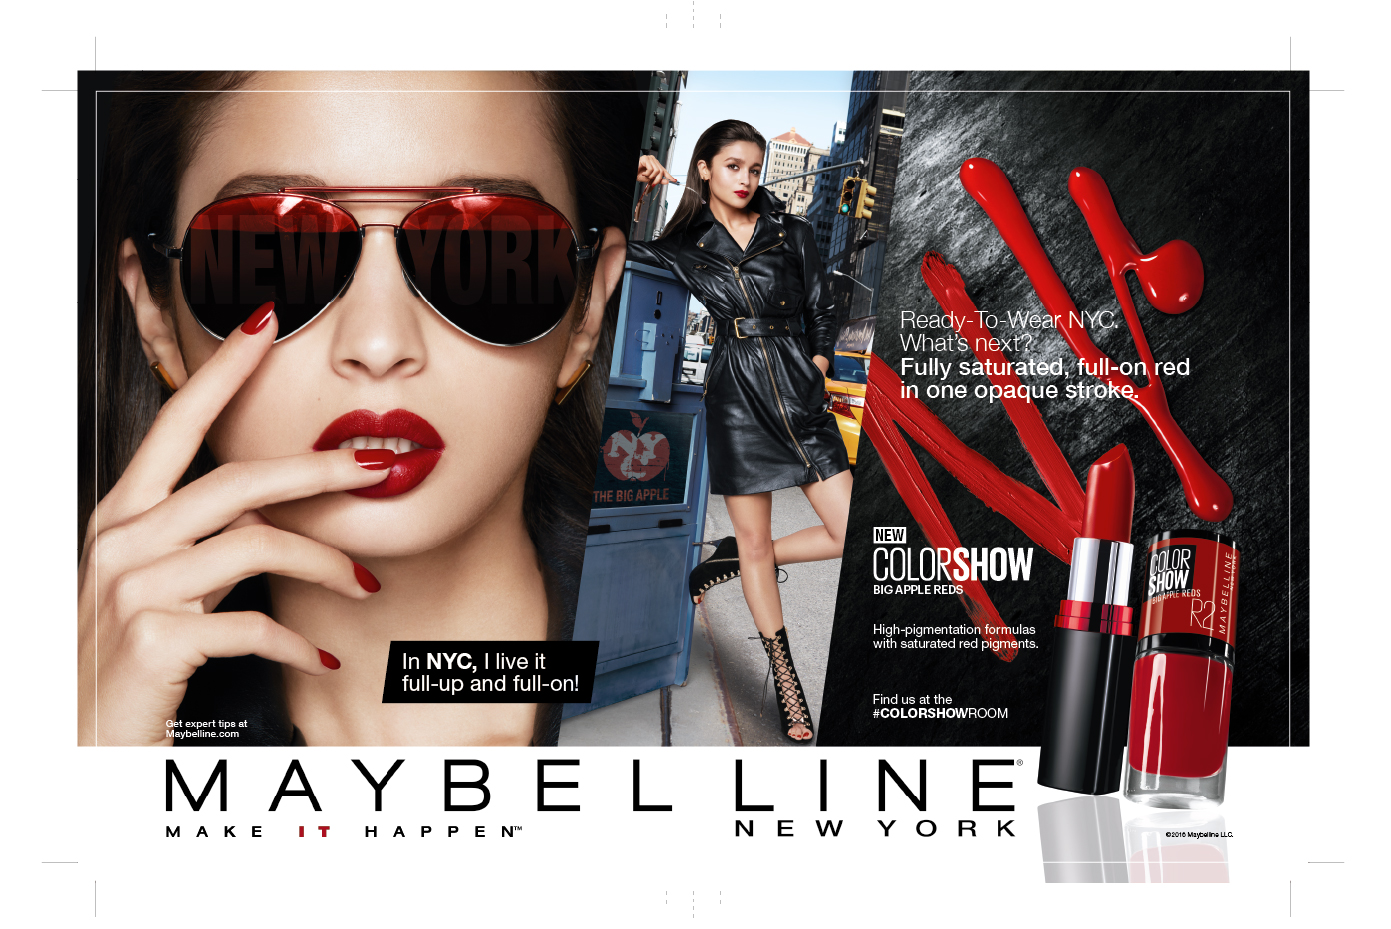 Alia Bhatt for Maybelline New York Big Apple Reds